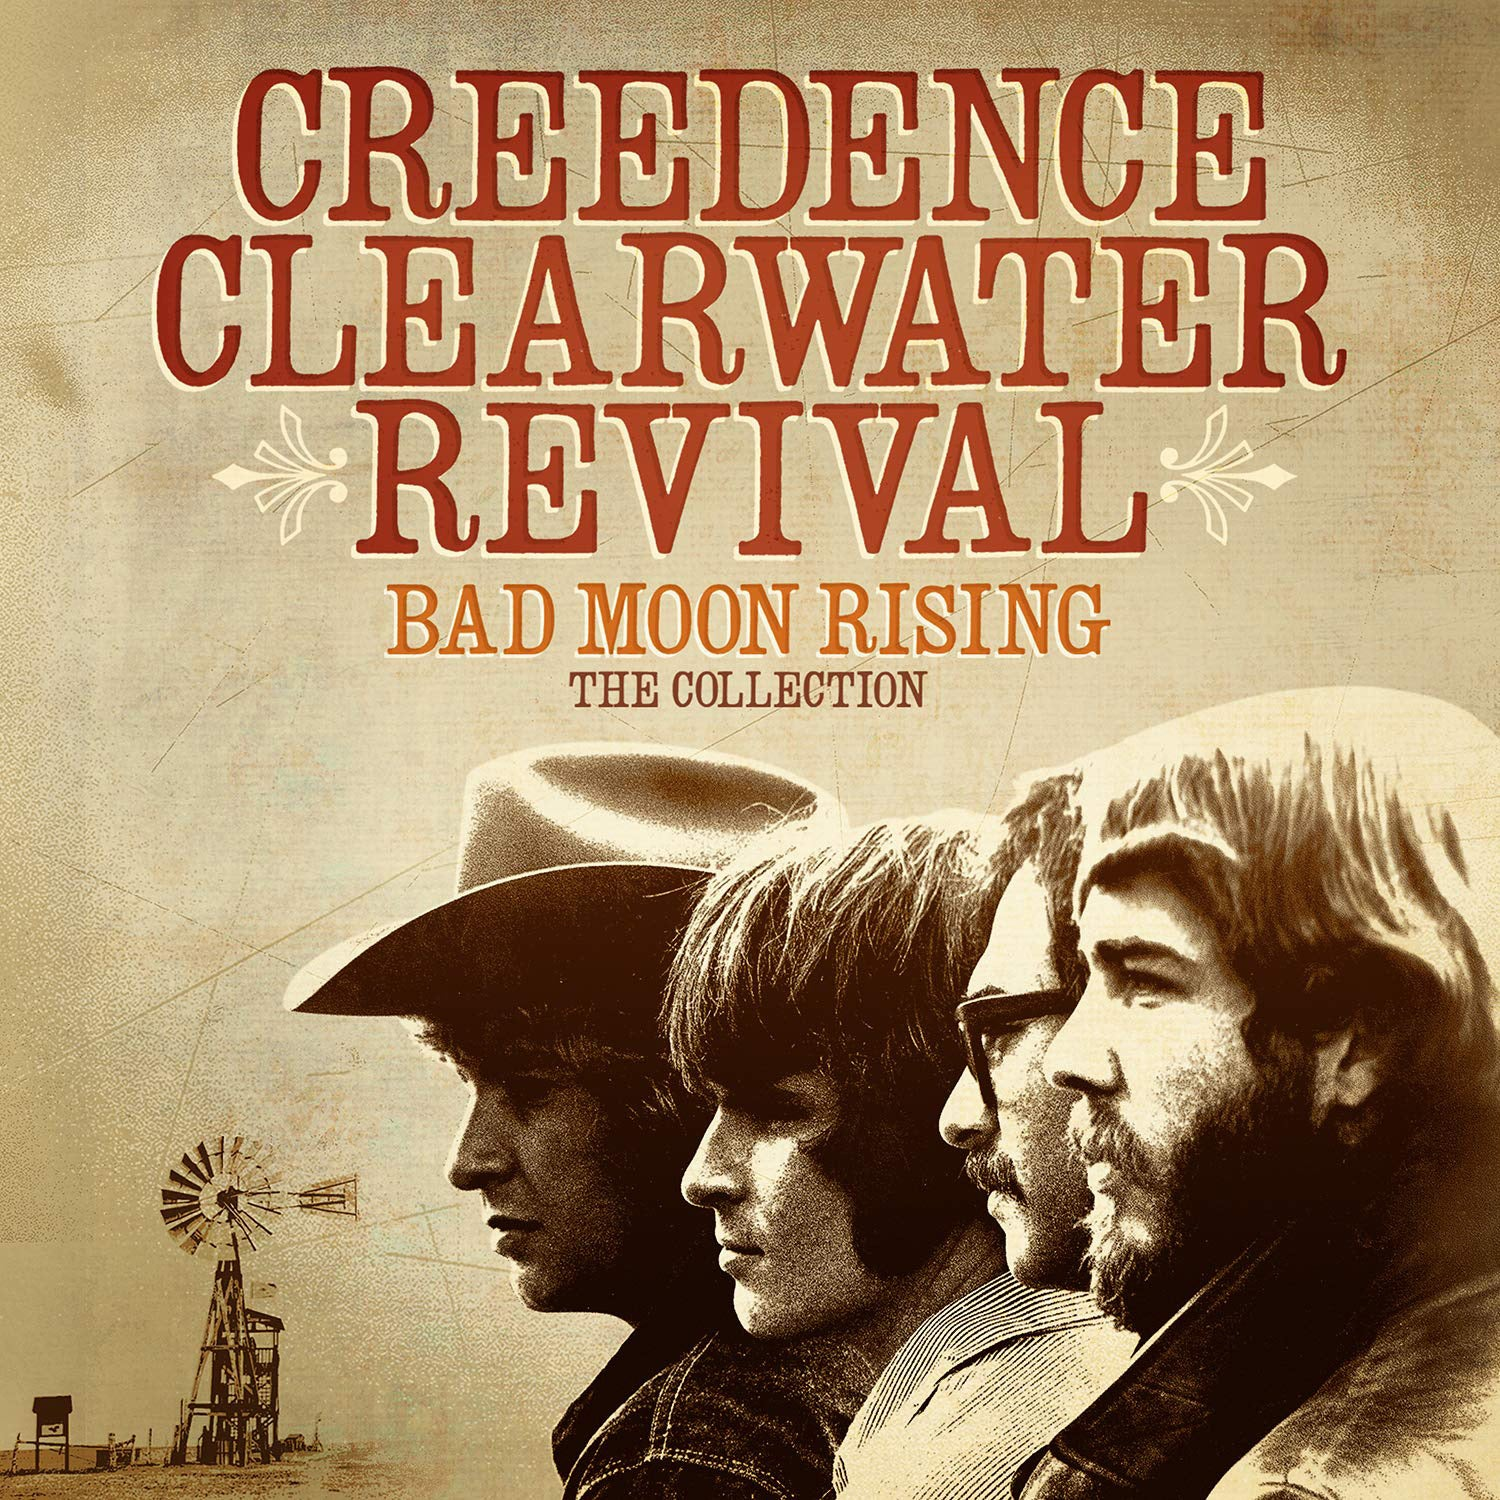 Creedence Clearwater Revival - Bad Moon Rising The Collection